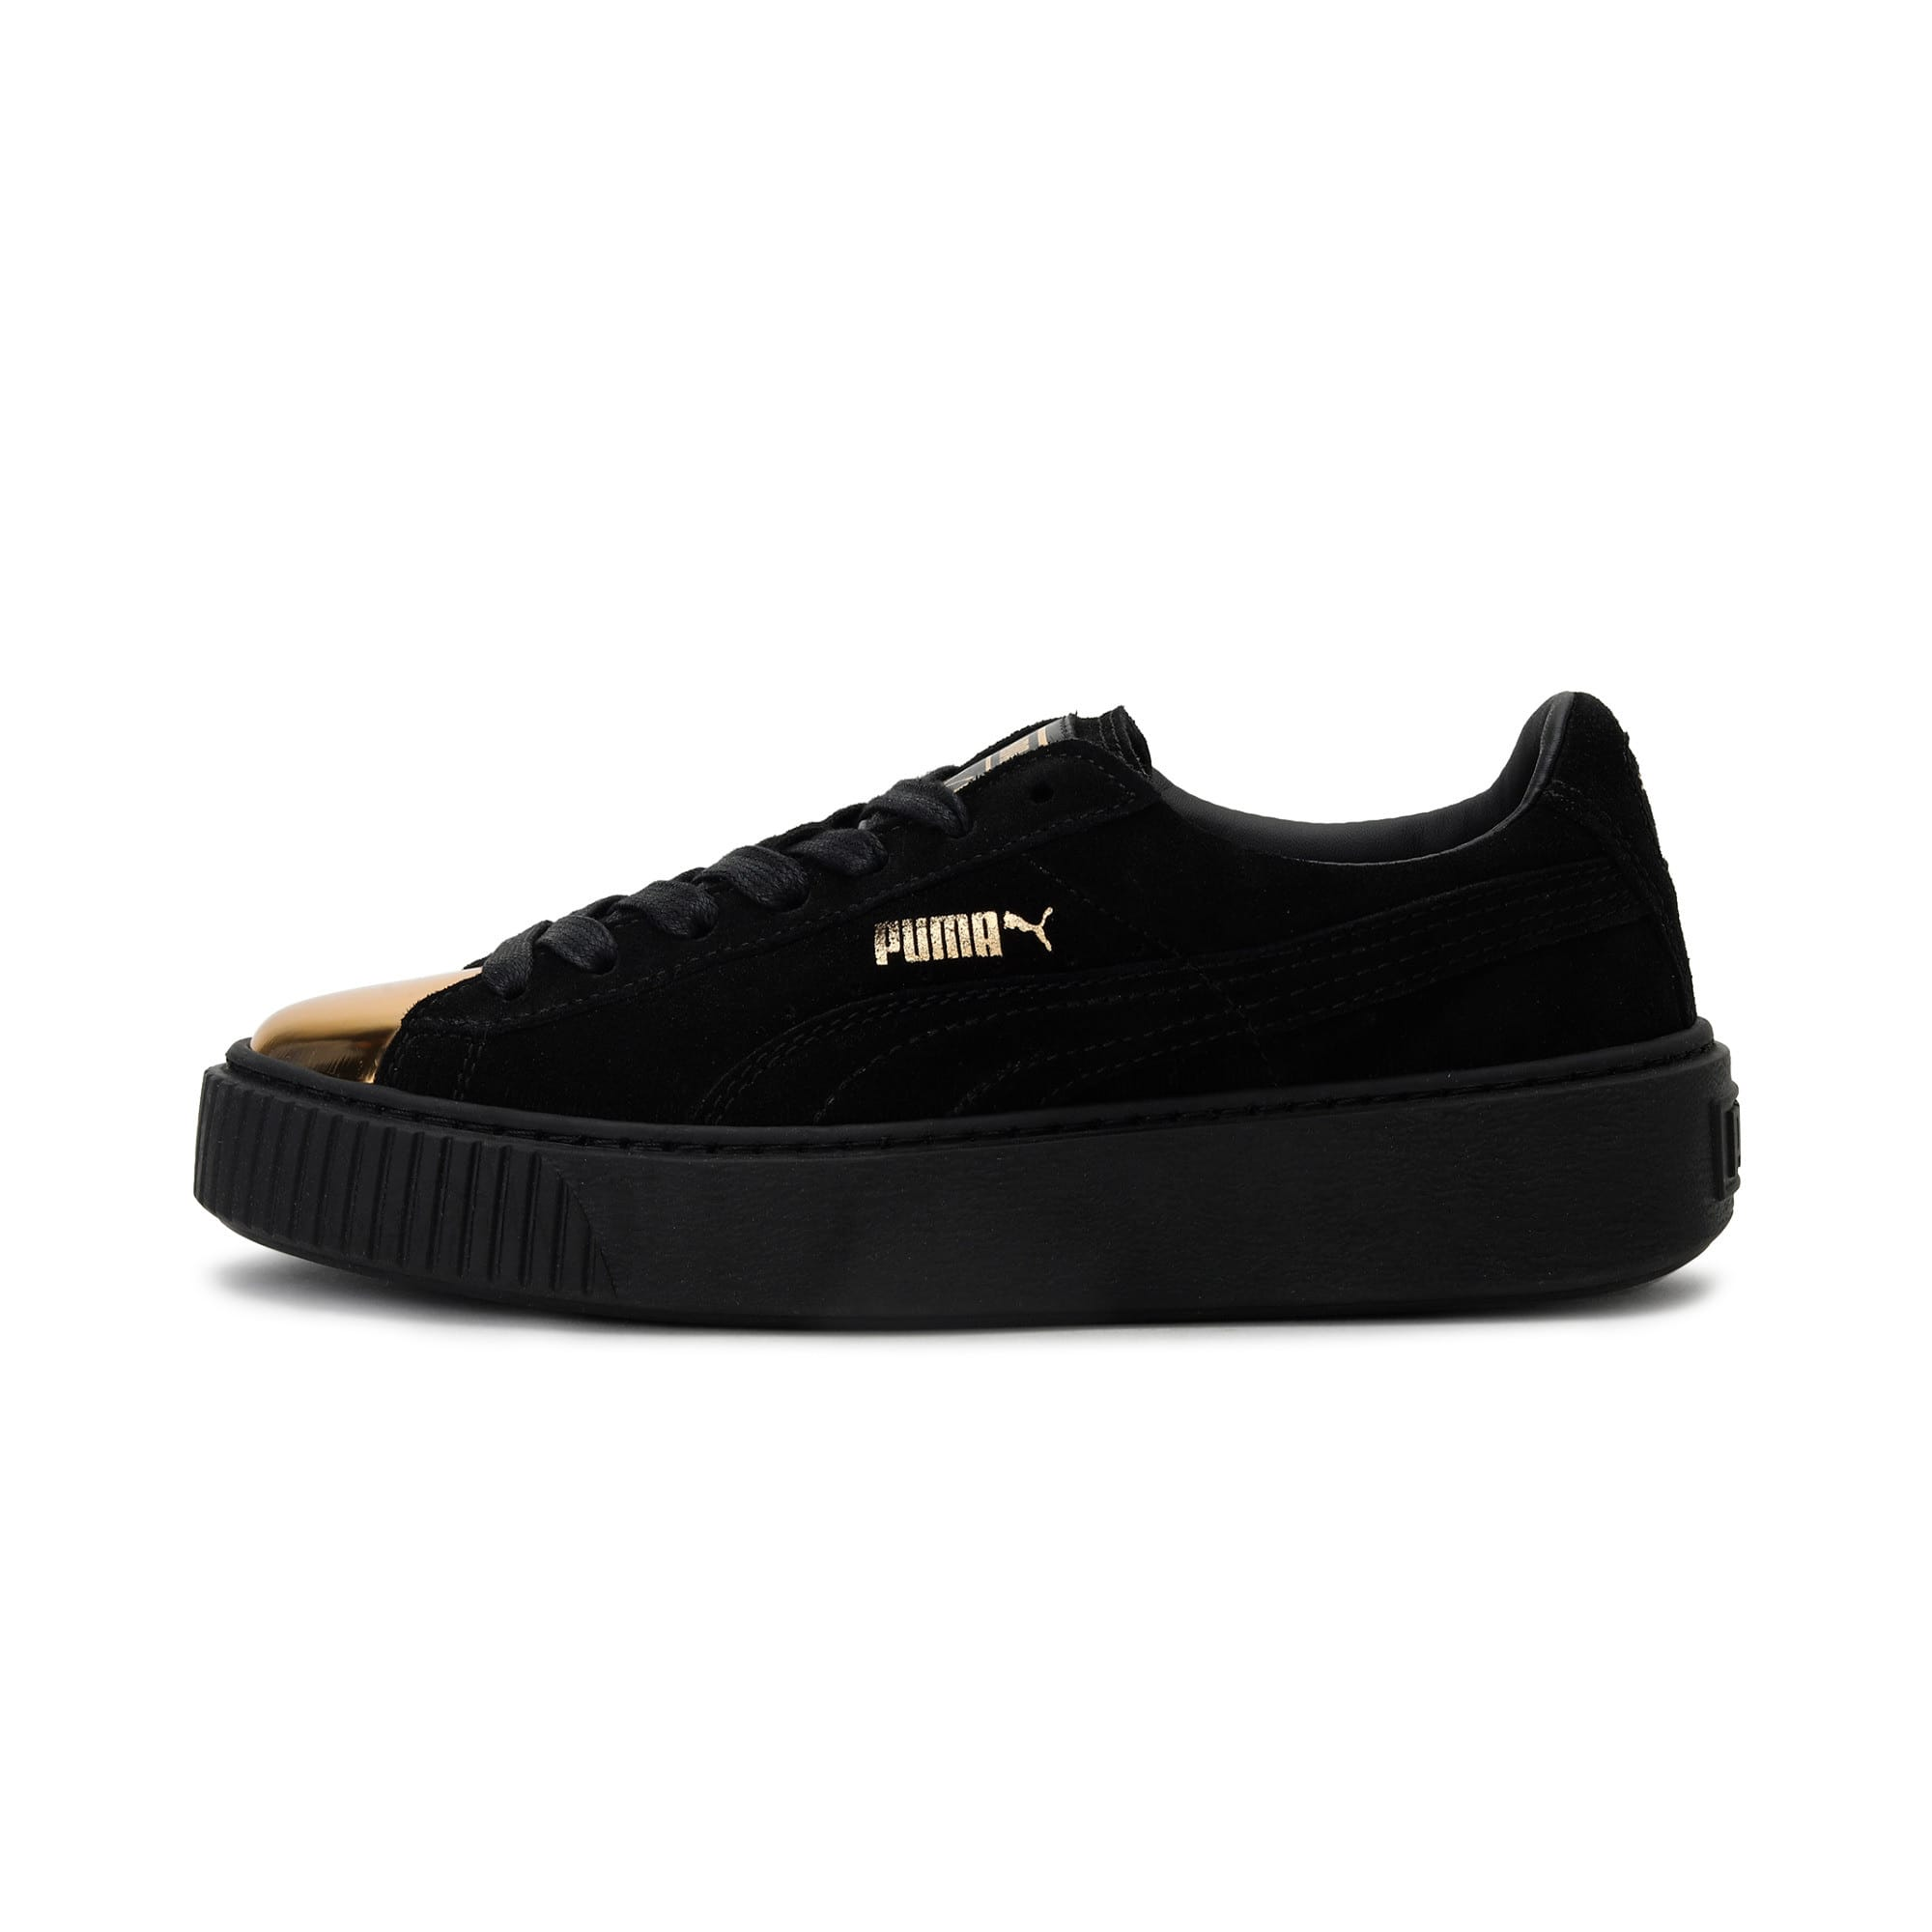 Thumbnail 1 of Suede Platform GOLD Women's Trainers, Gold-Puma Black-Puma Black, medium-IND